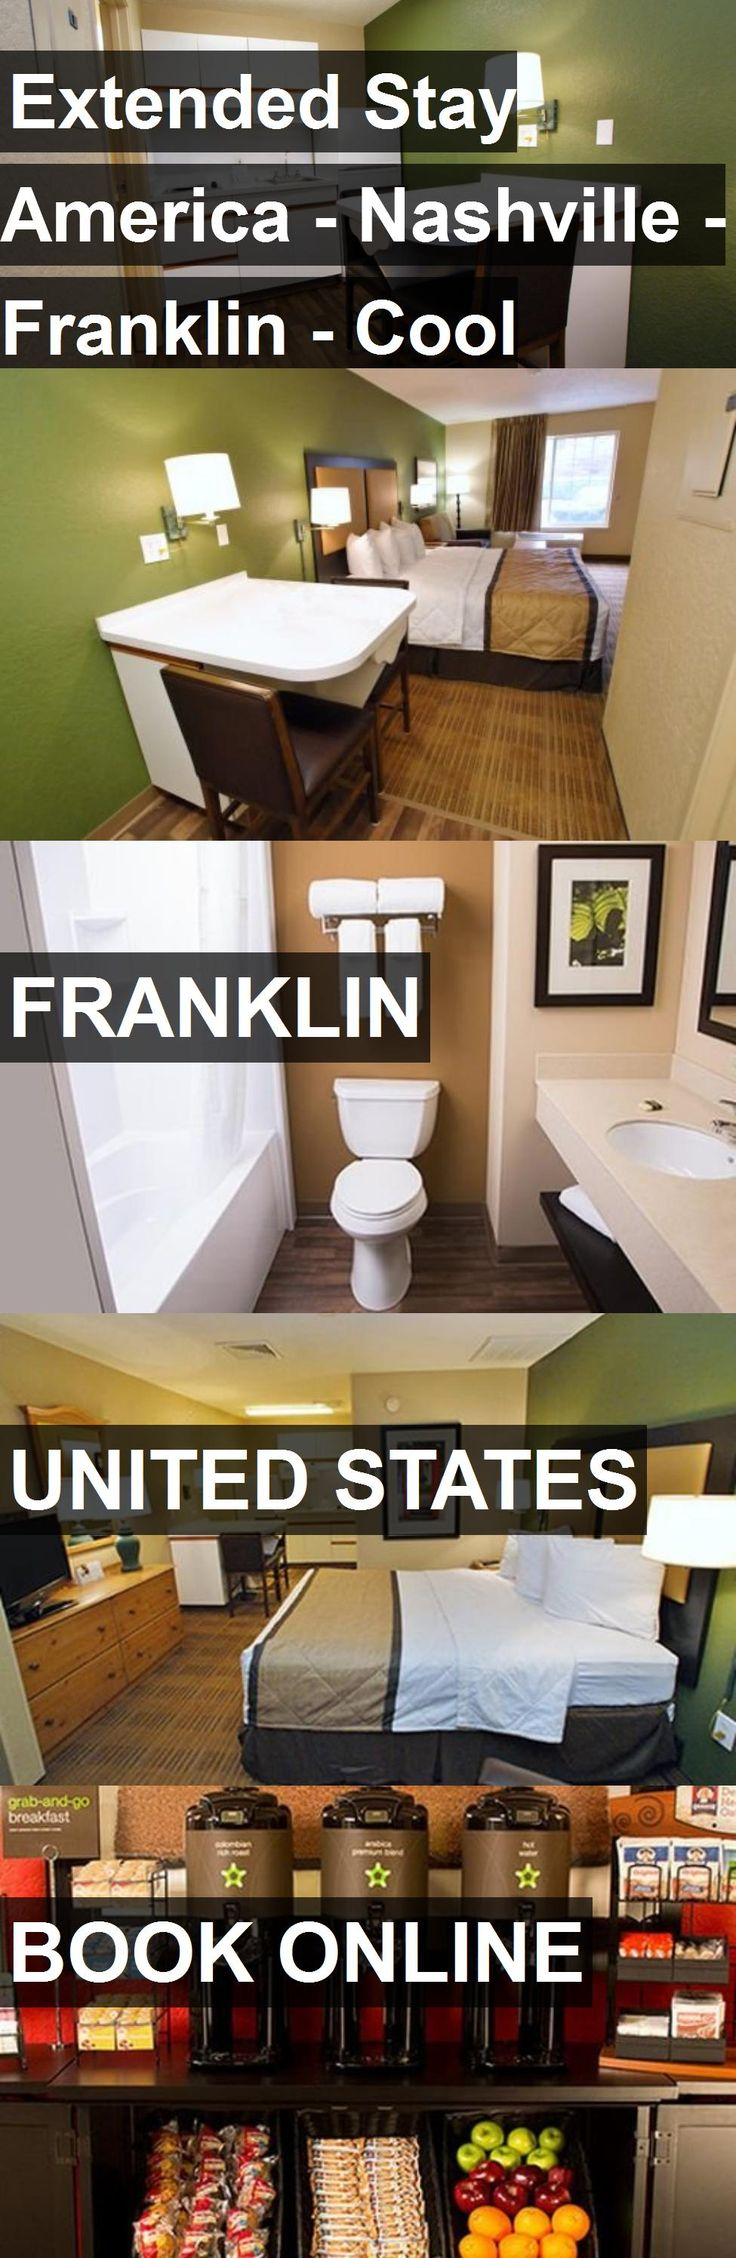 Hotel Extended Stay America - Nashville - Franklin - Cool Springs in Franklin, United States. For more information, photos, reviews and best prices please follow the link. #UnitedStates #Franklin #travel #vacation #hotel